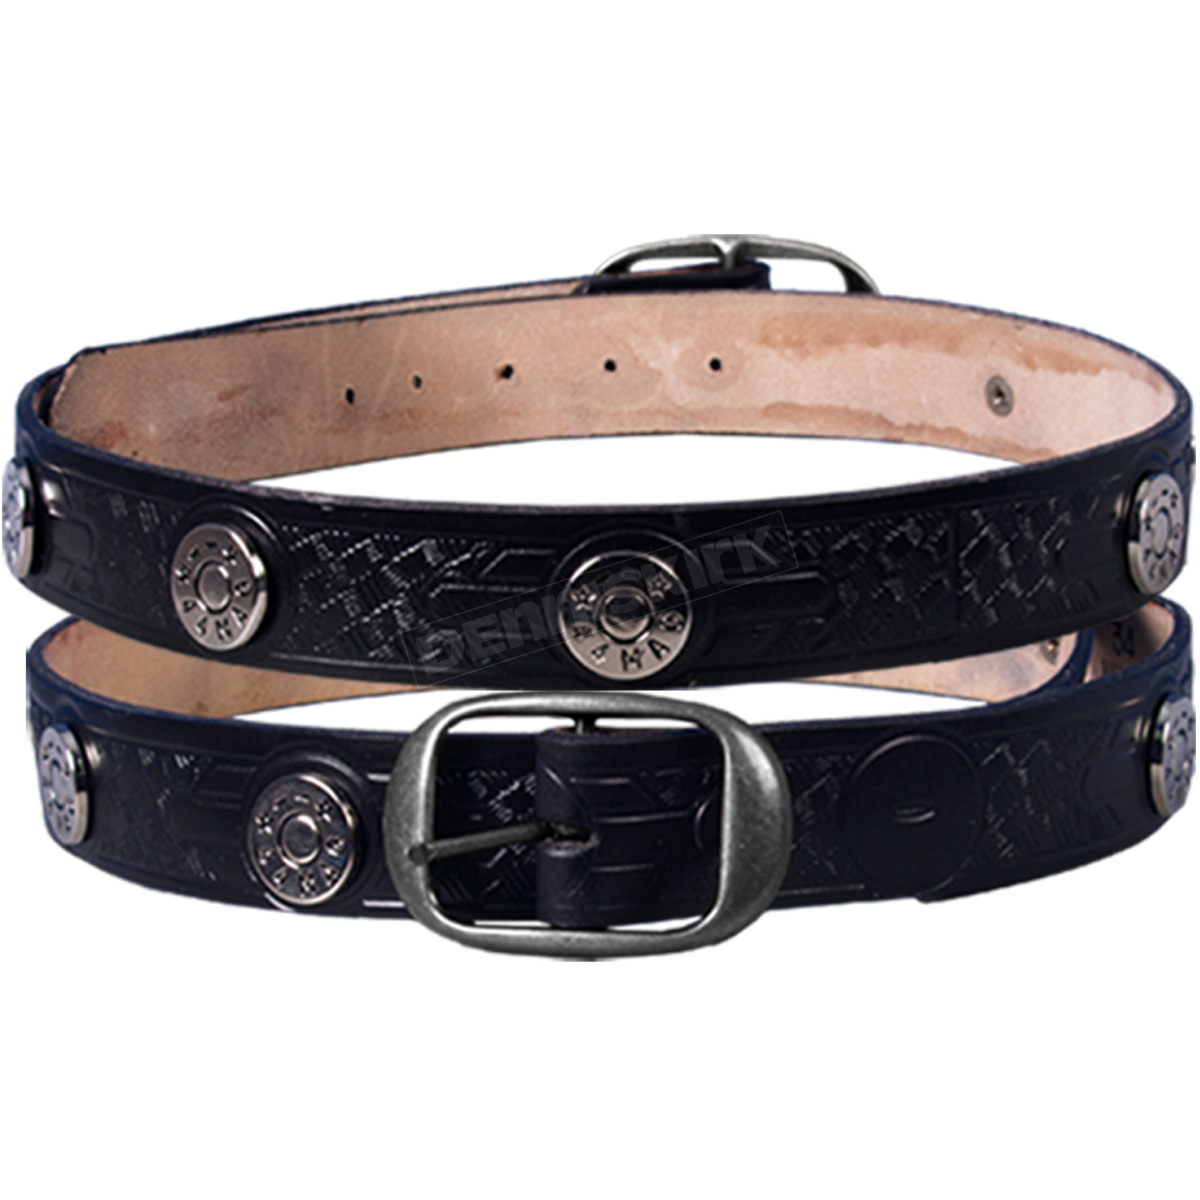 leathers 44 mag studded leather belt ble1007 46